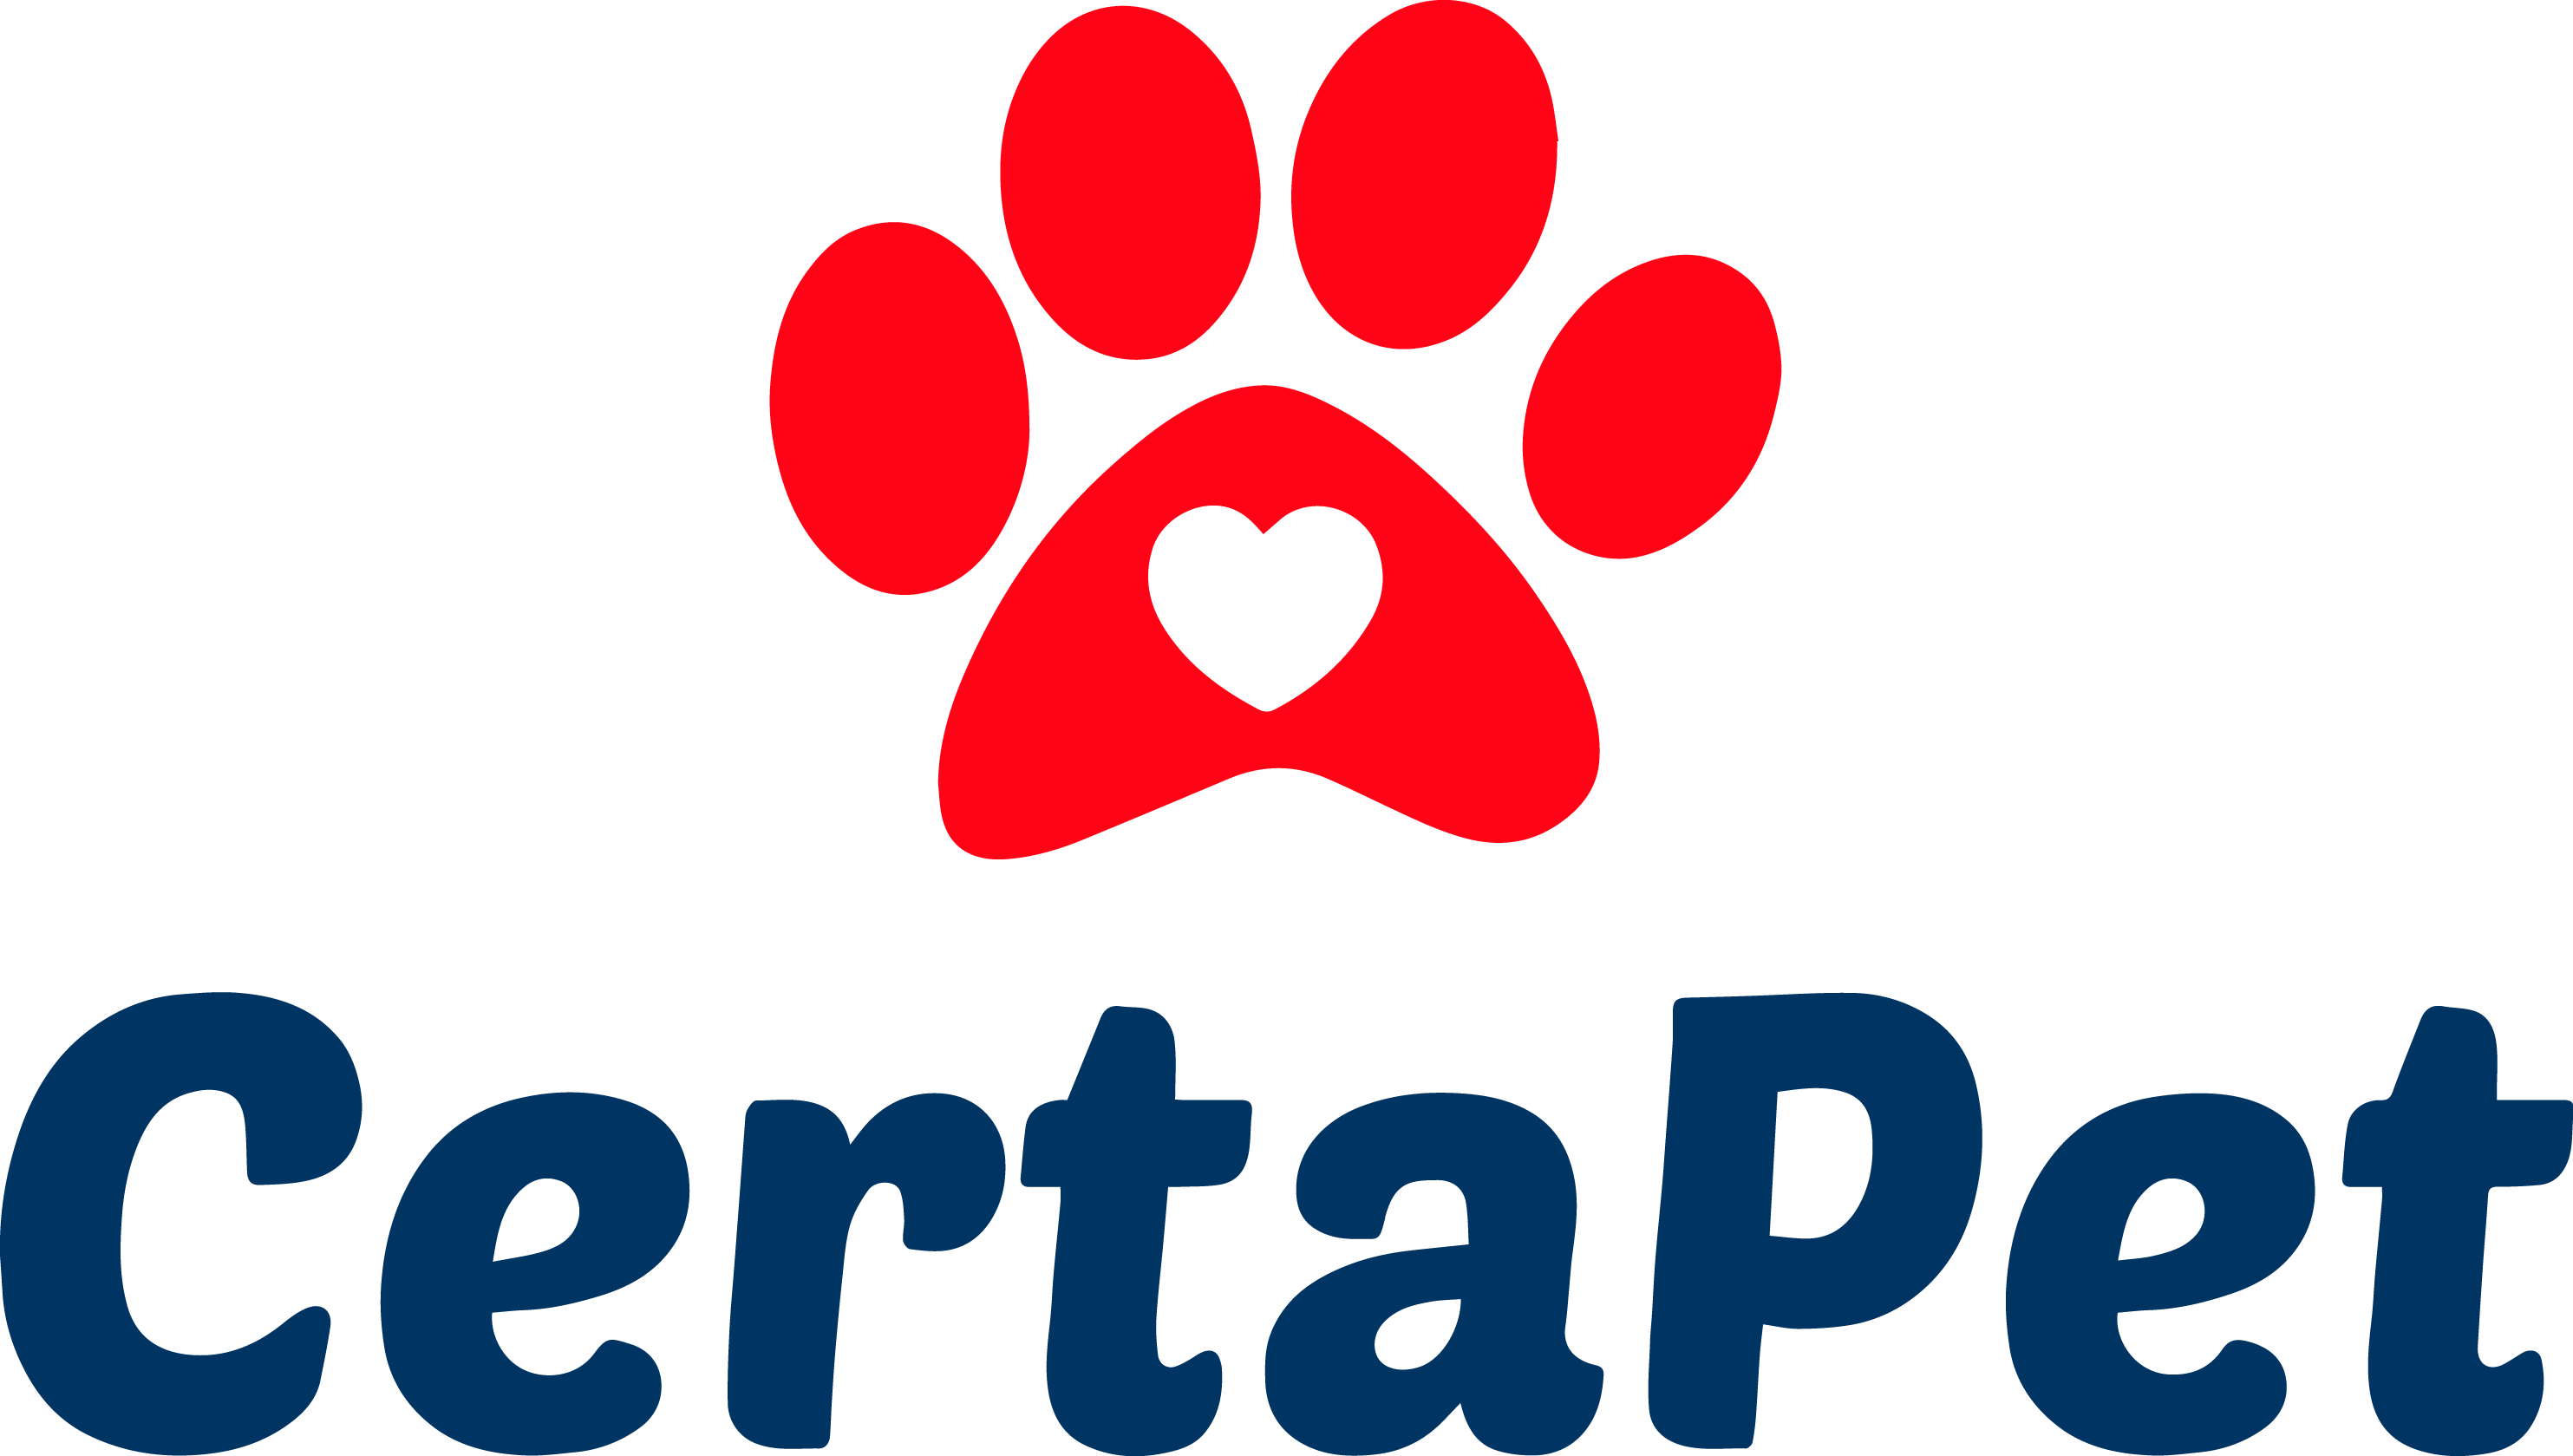 CertaPet Help Center home page